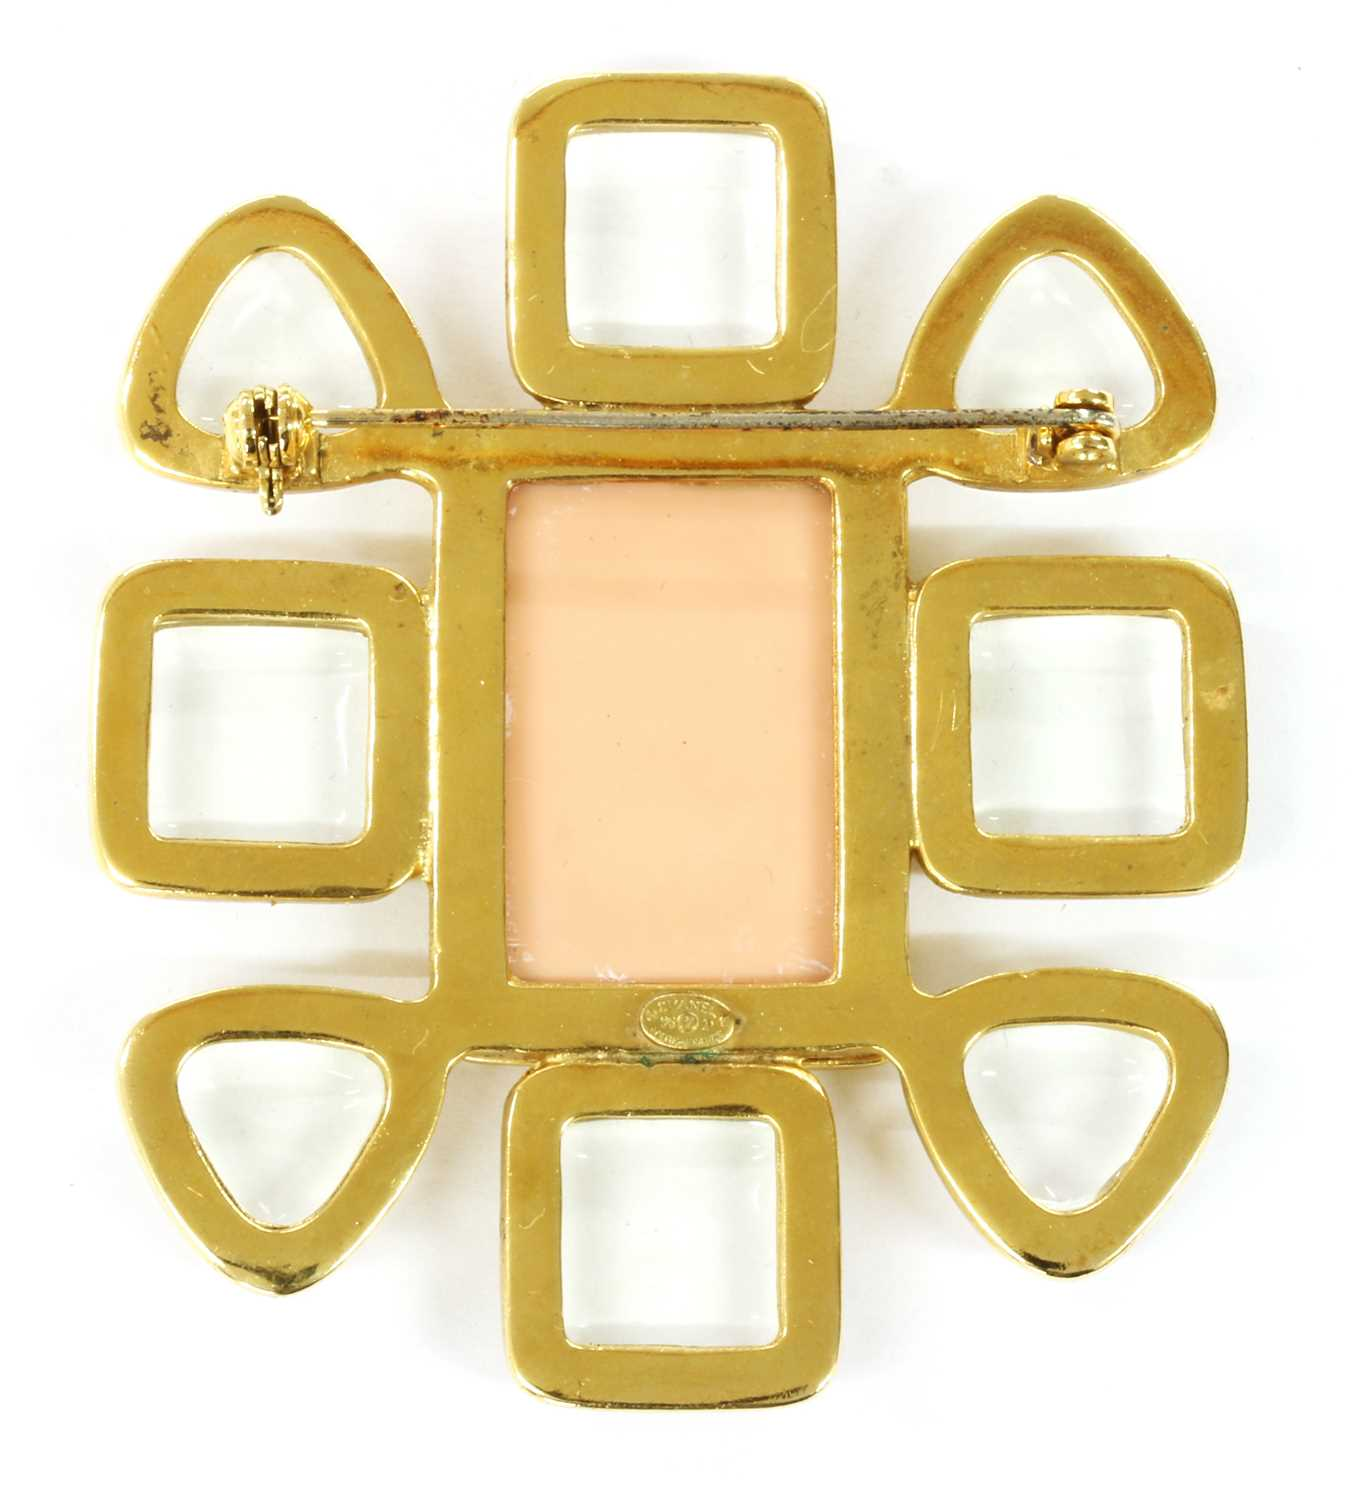 A Chanel gold-plated brooch, - Image 2 of 4